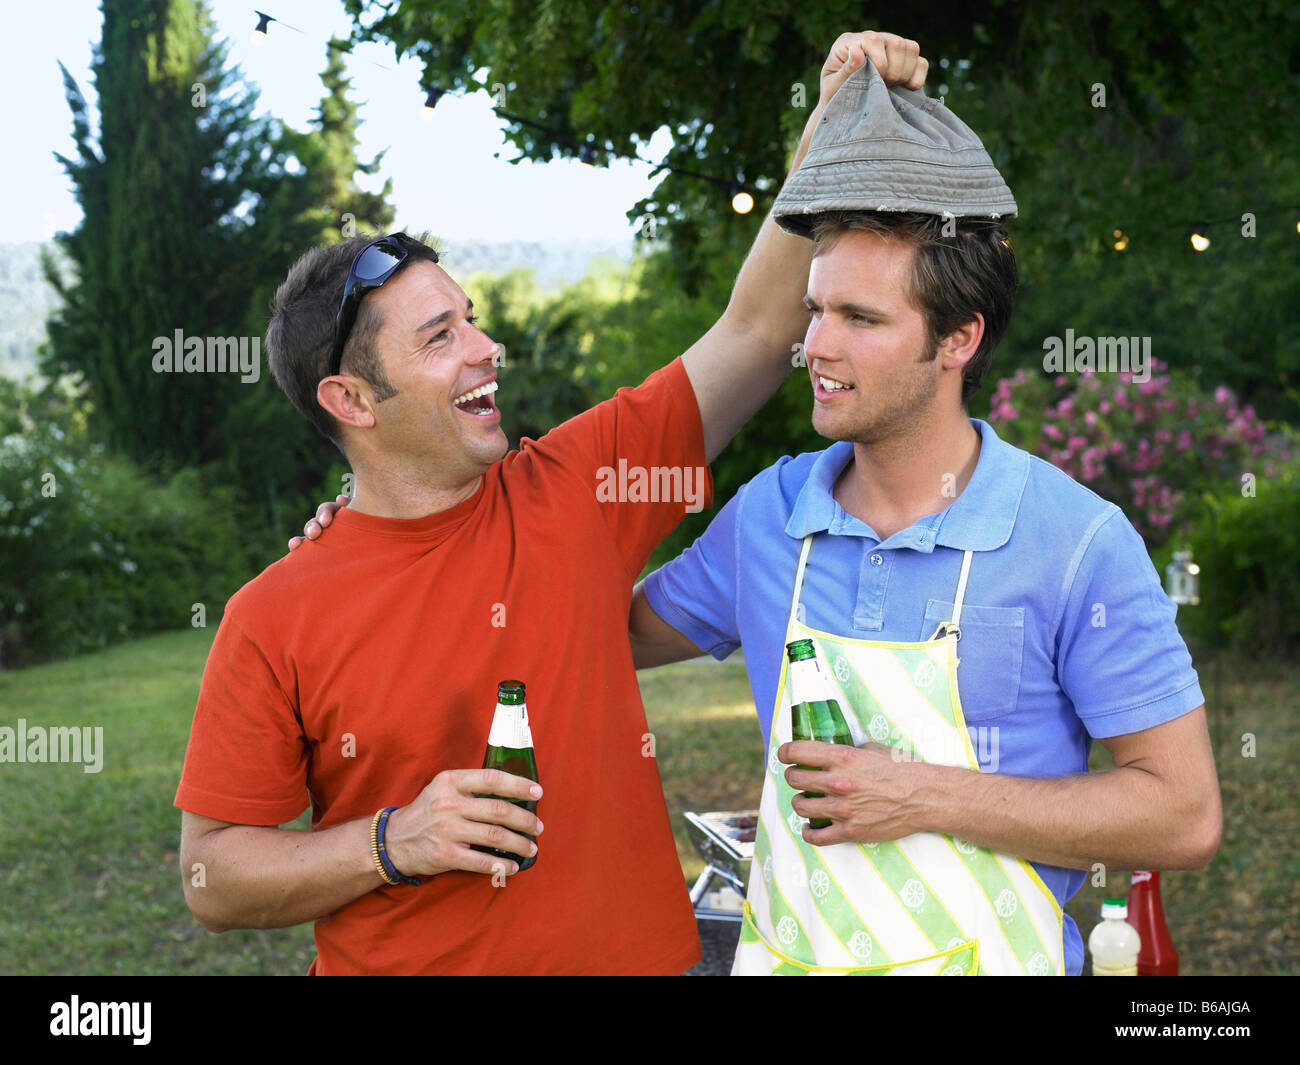 Two men laughing at barbecue - Stock Image